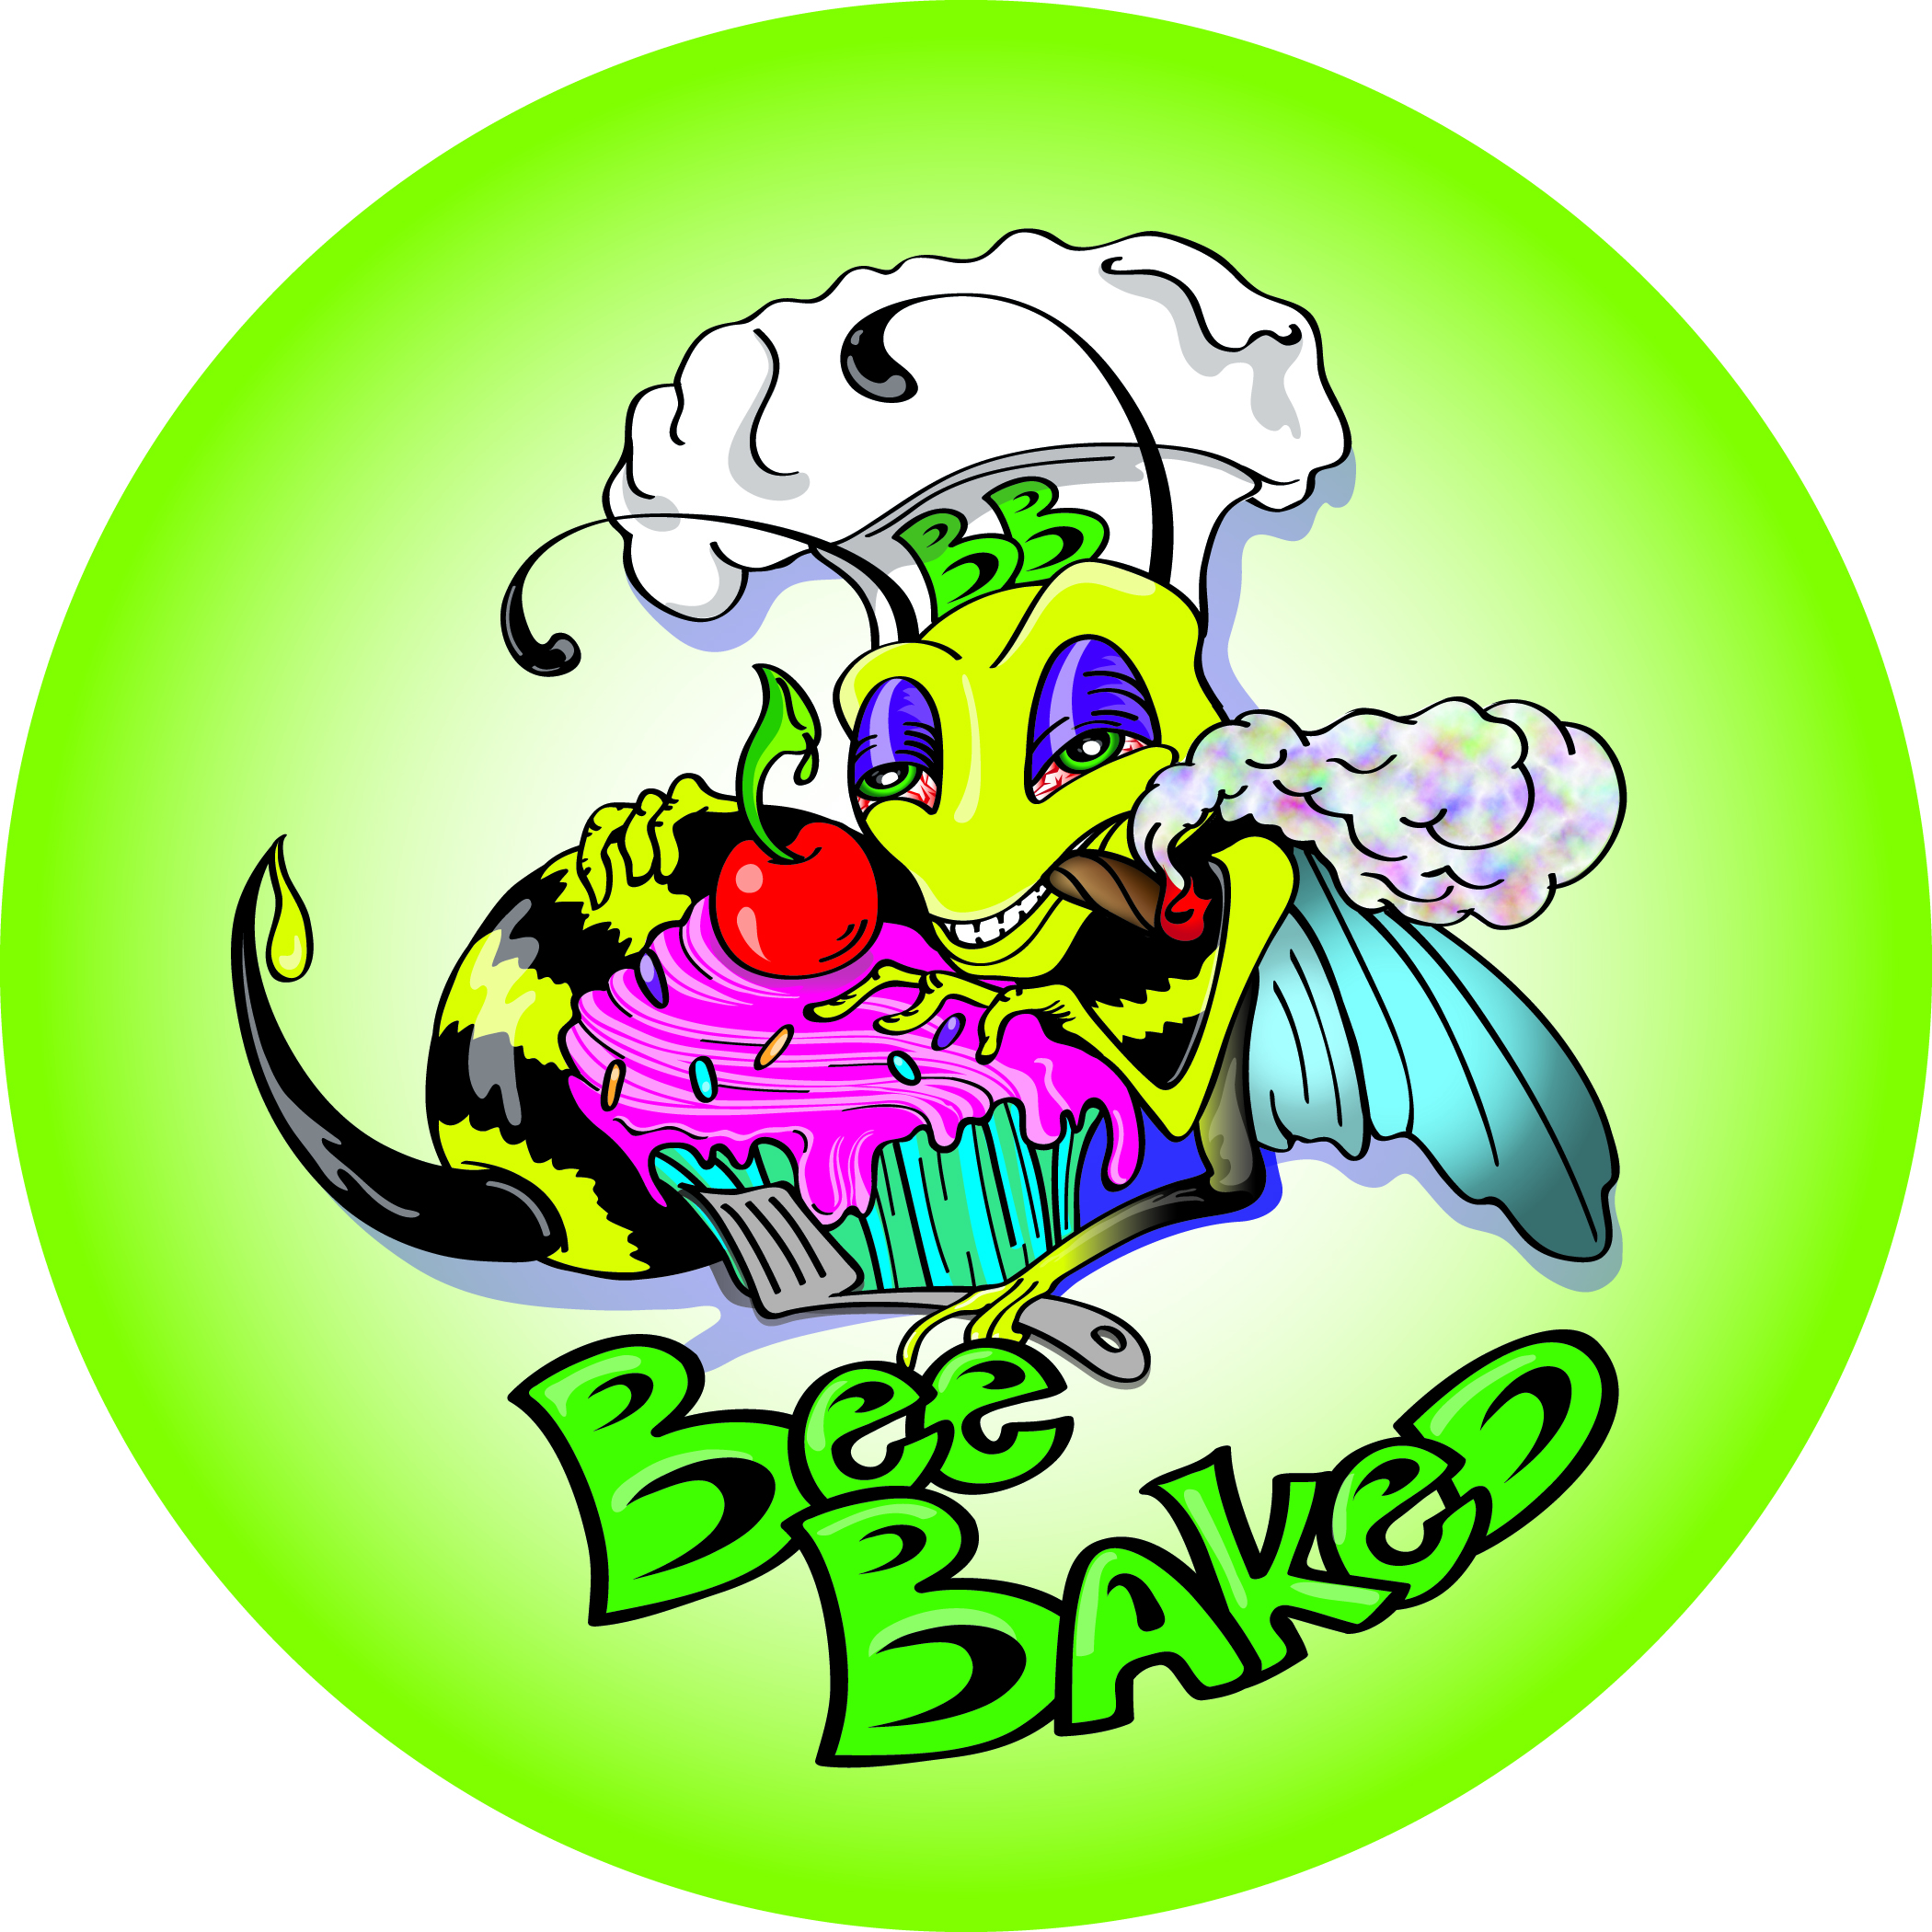 Bee Baked